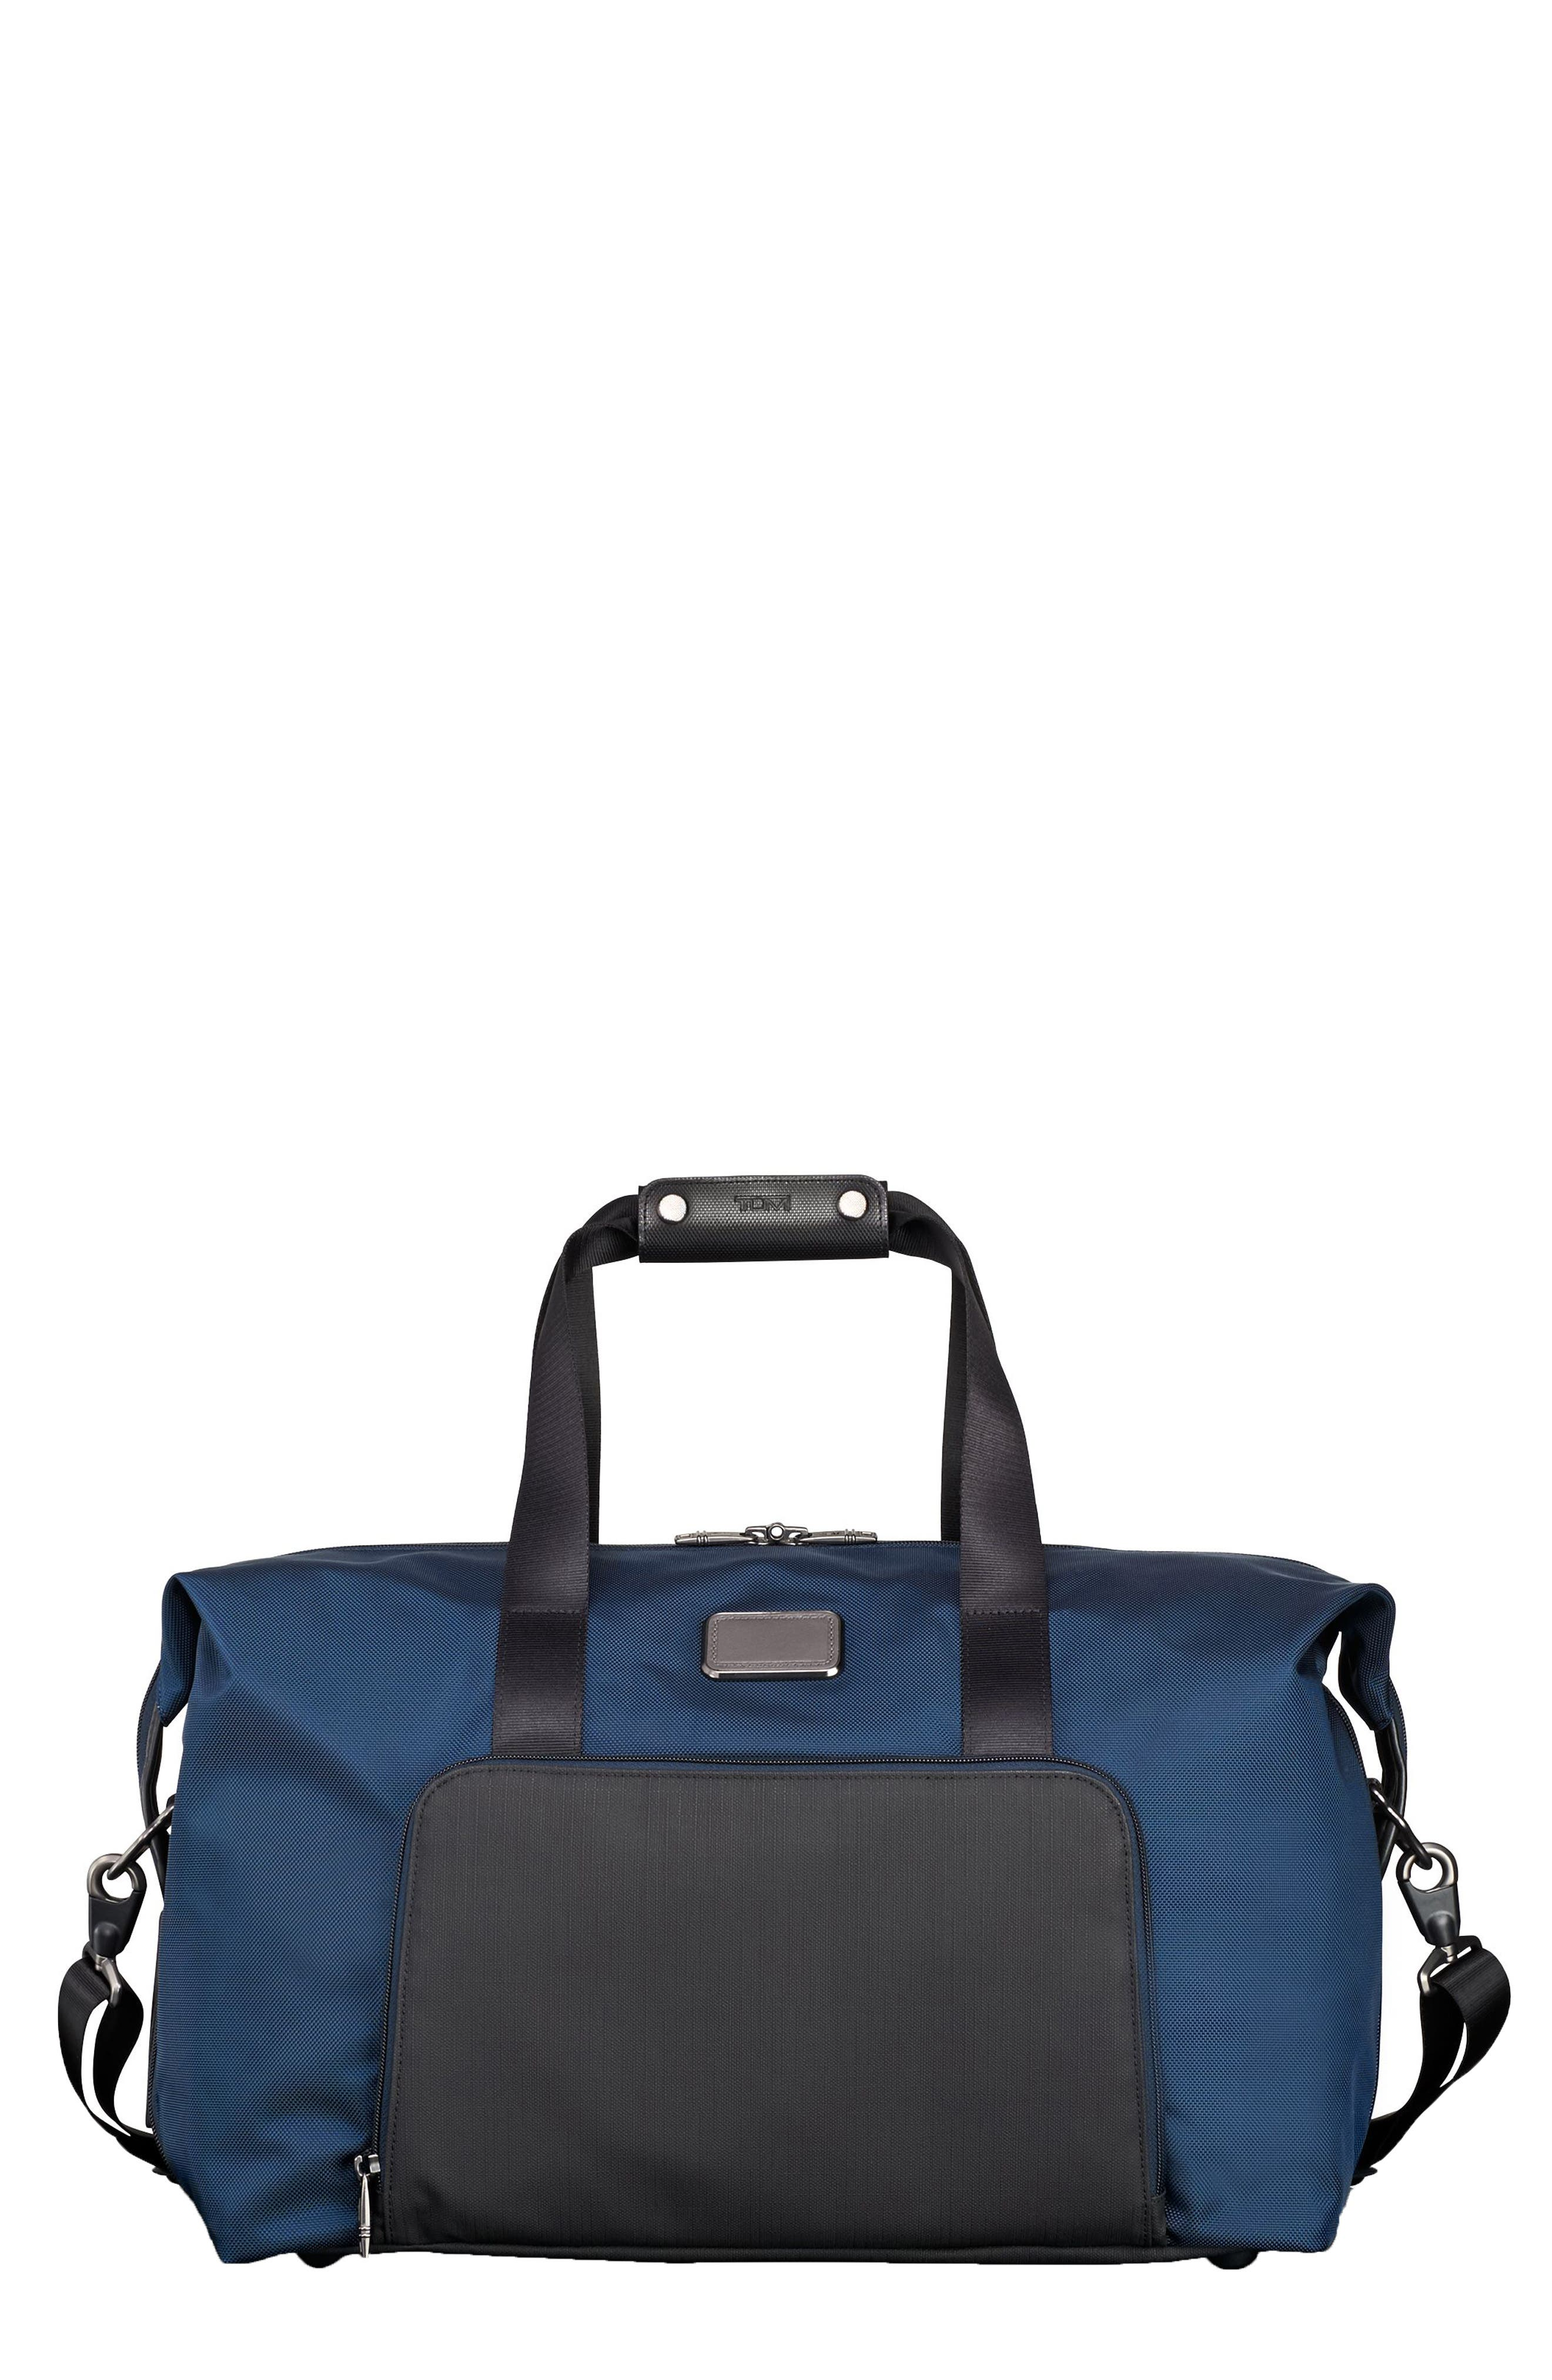 Alpha 2 Expandable Travel Satchel,                         Main,                         color, 421